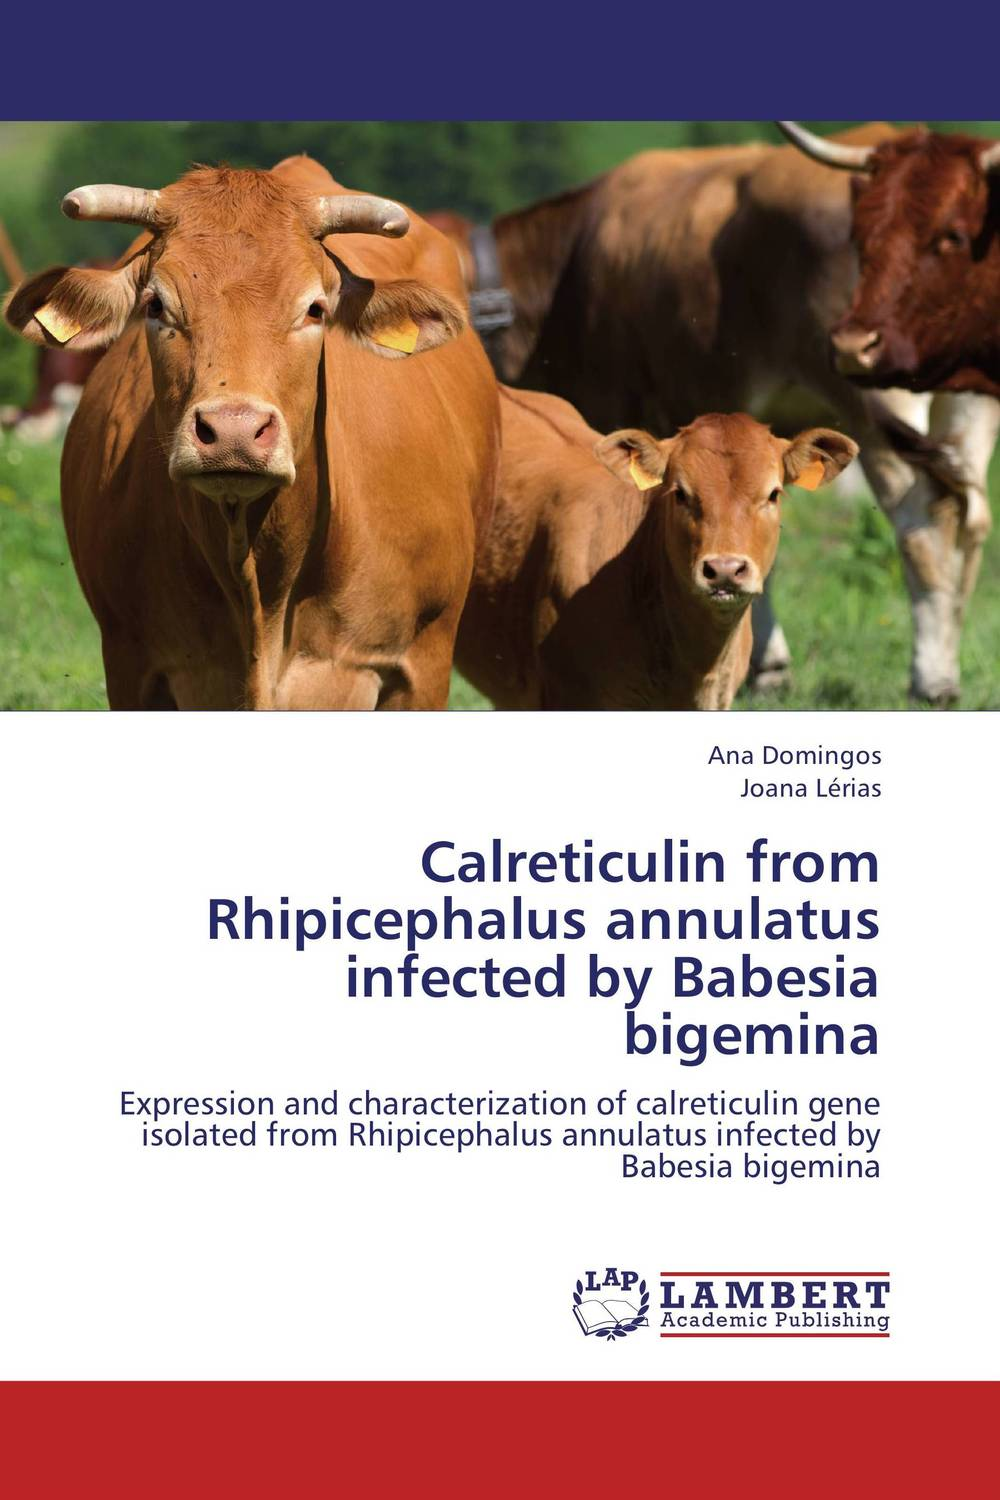 Calreticulin from Rhipicephalus annulatus infected by Babesia bigemina vectorial capacity of ticks